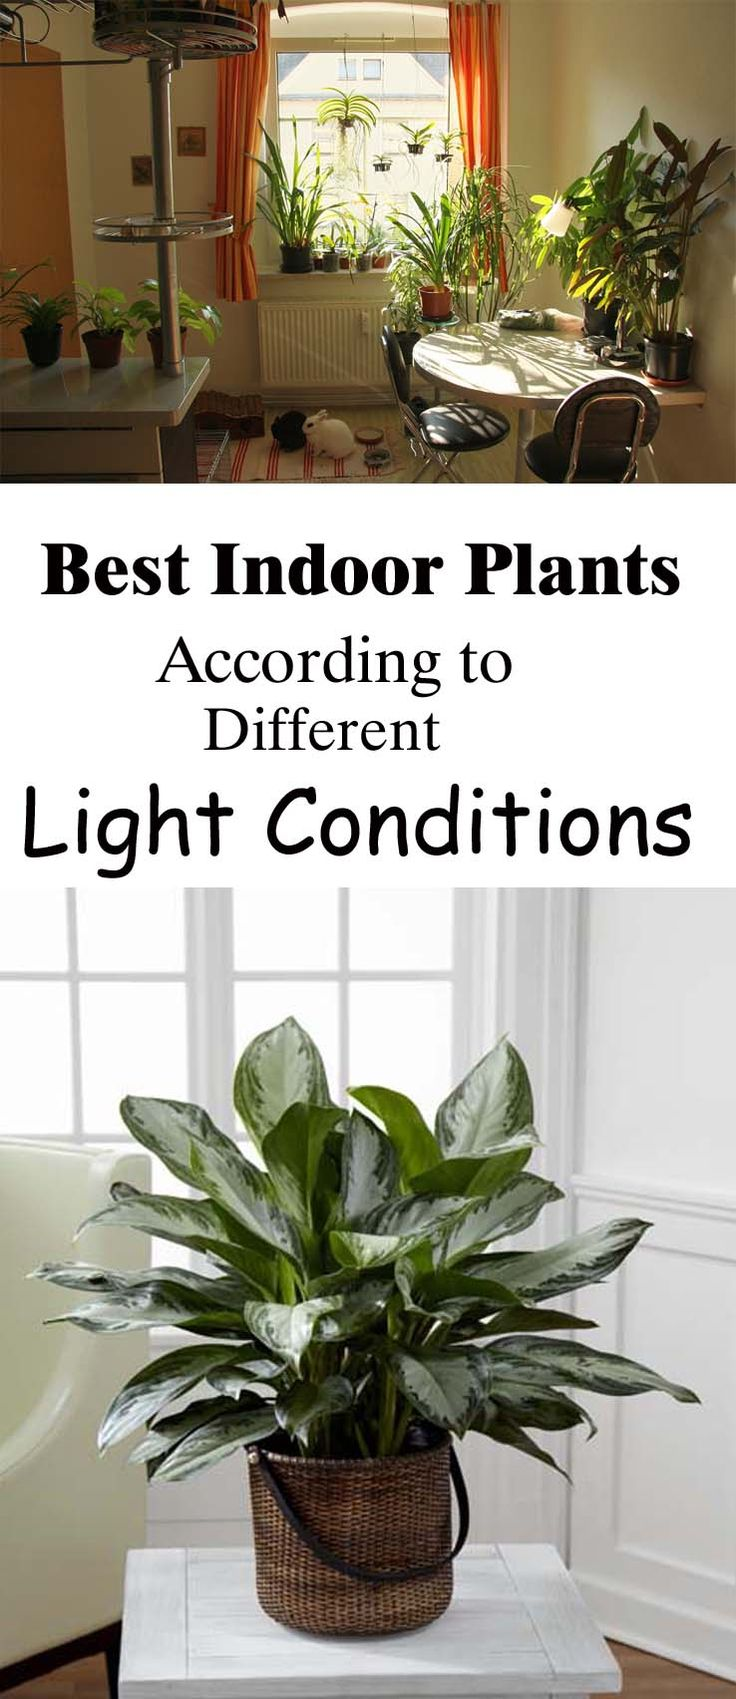 Best 25 Low Light Plants Ideas On Pinterest Indoor Plants Low Light Low Light Houseplants